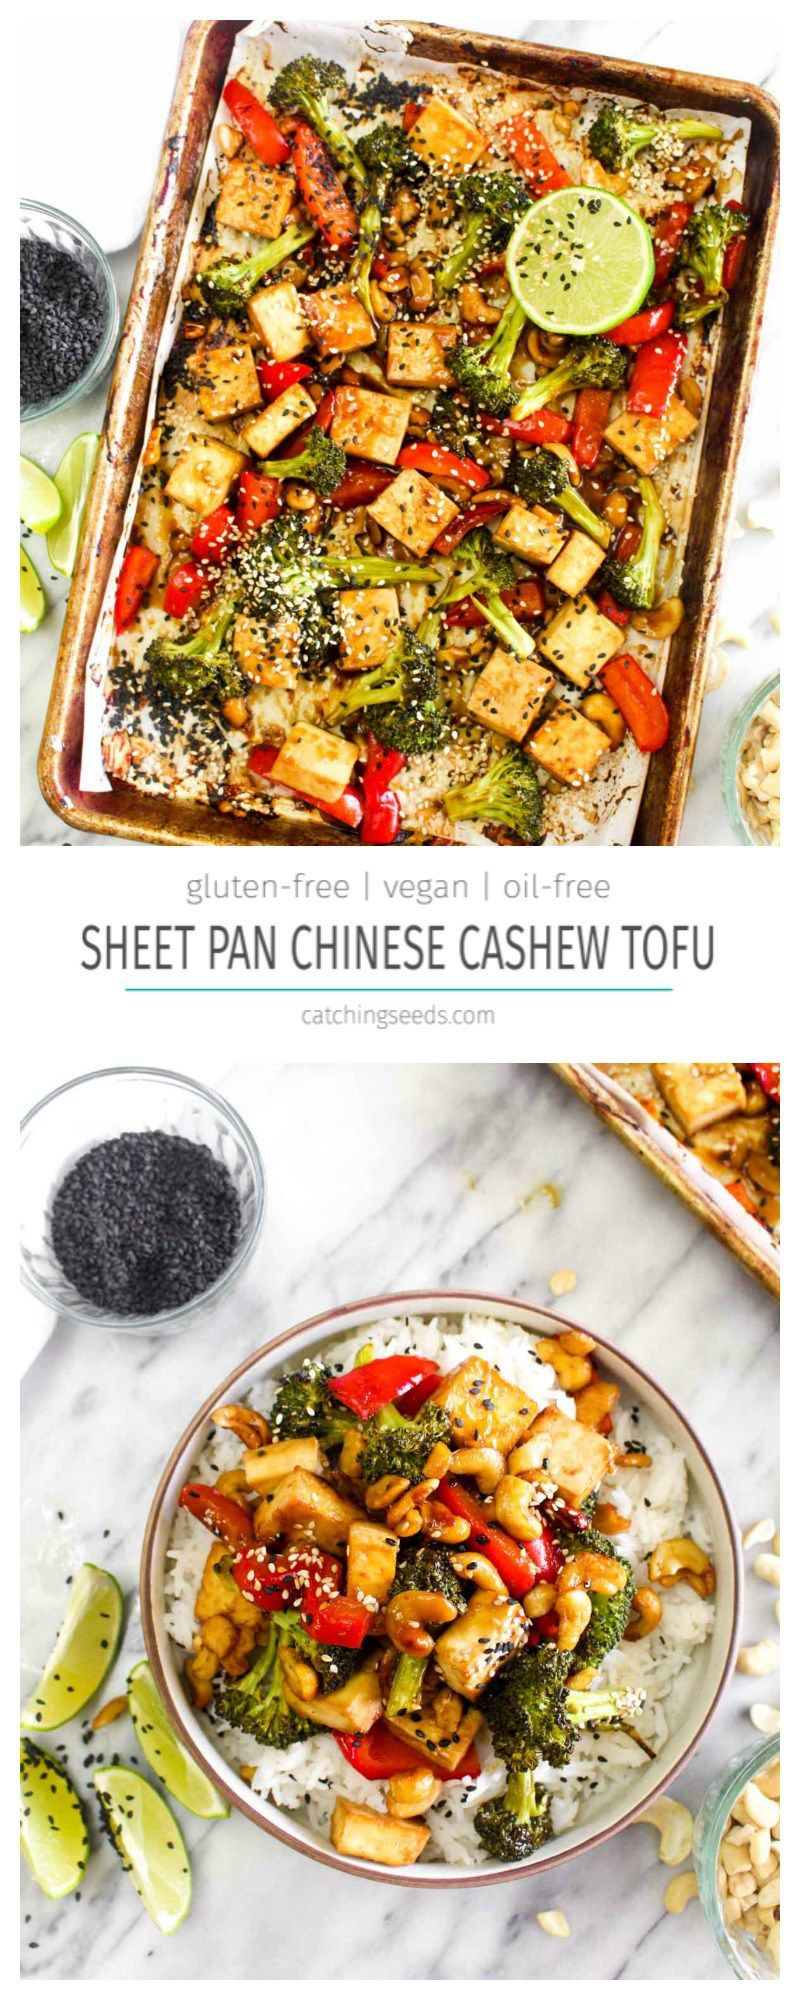 Sheet Pan Chinese Cashew Tofu